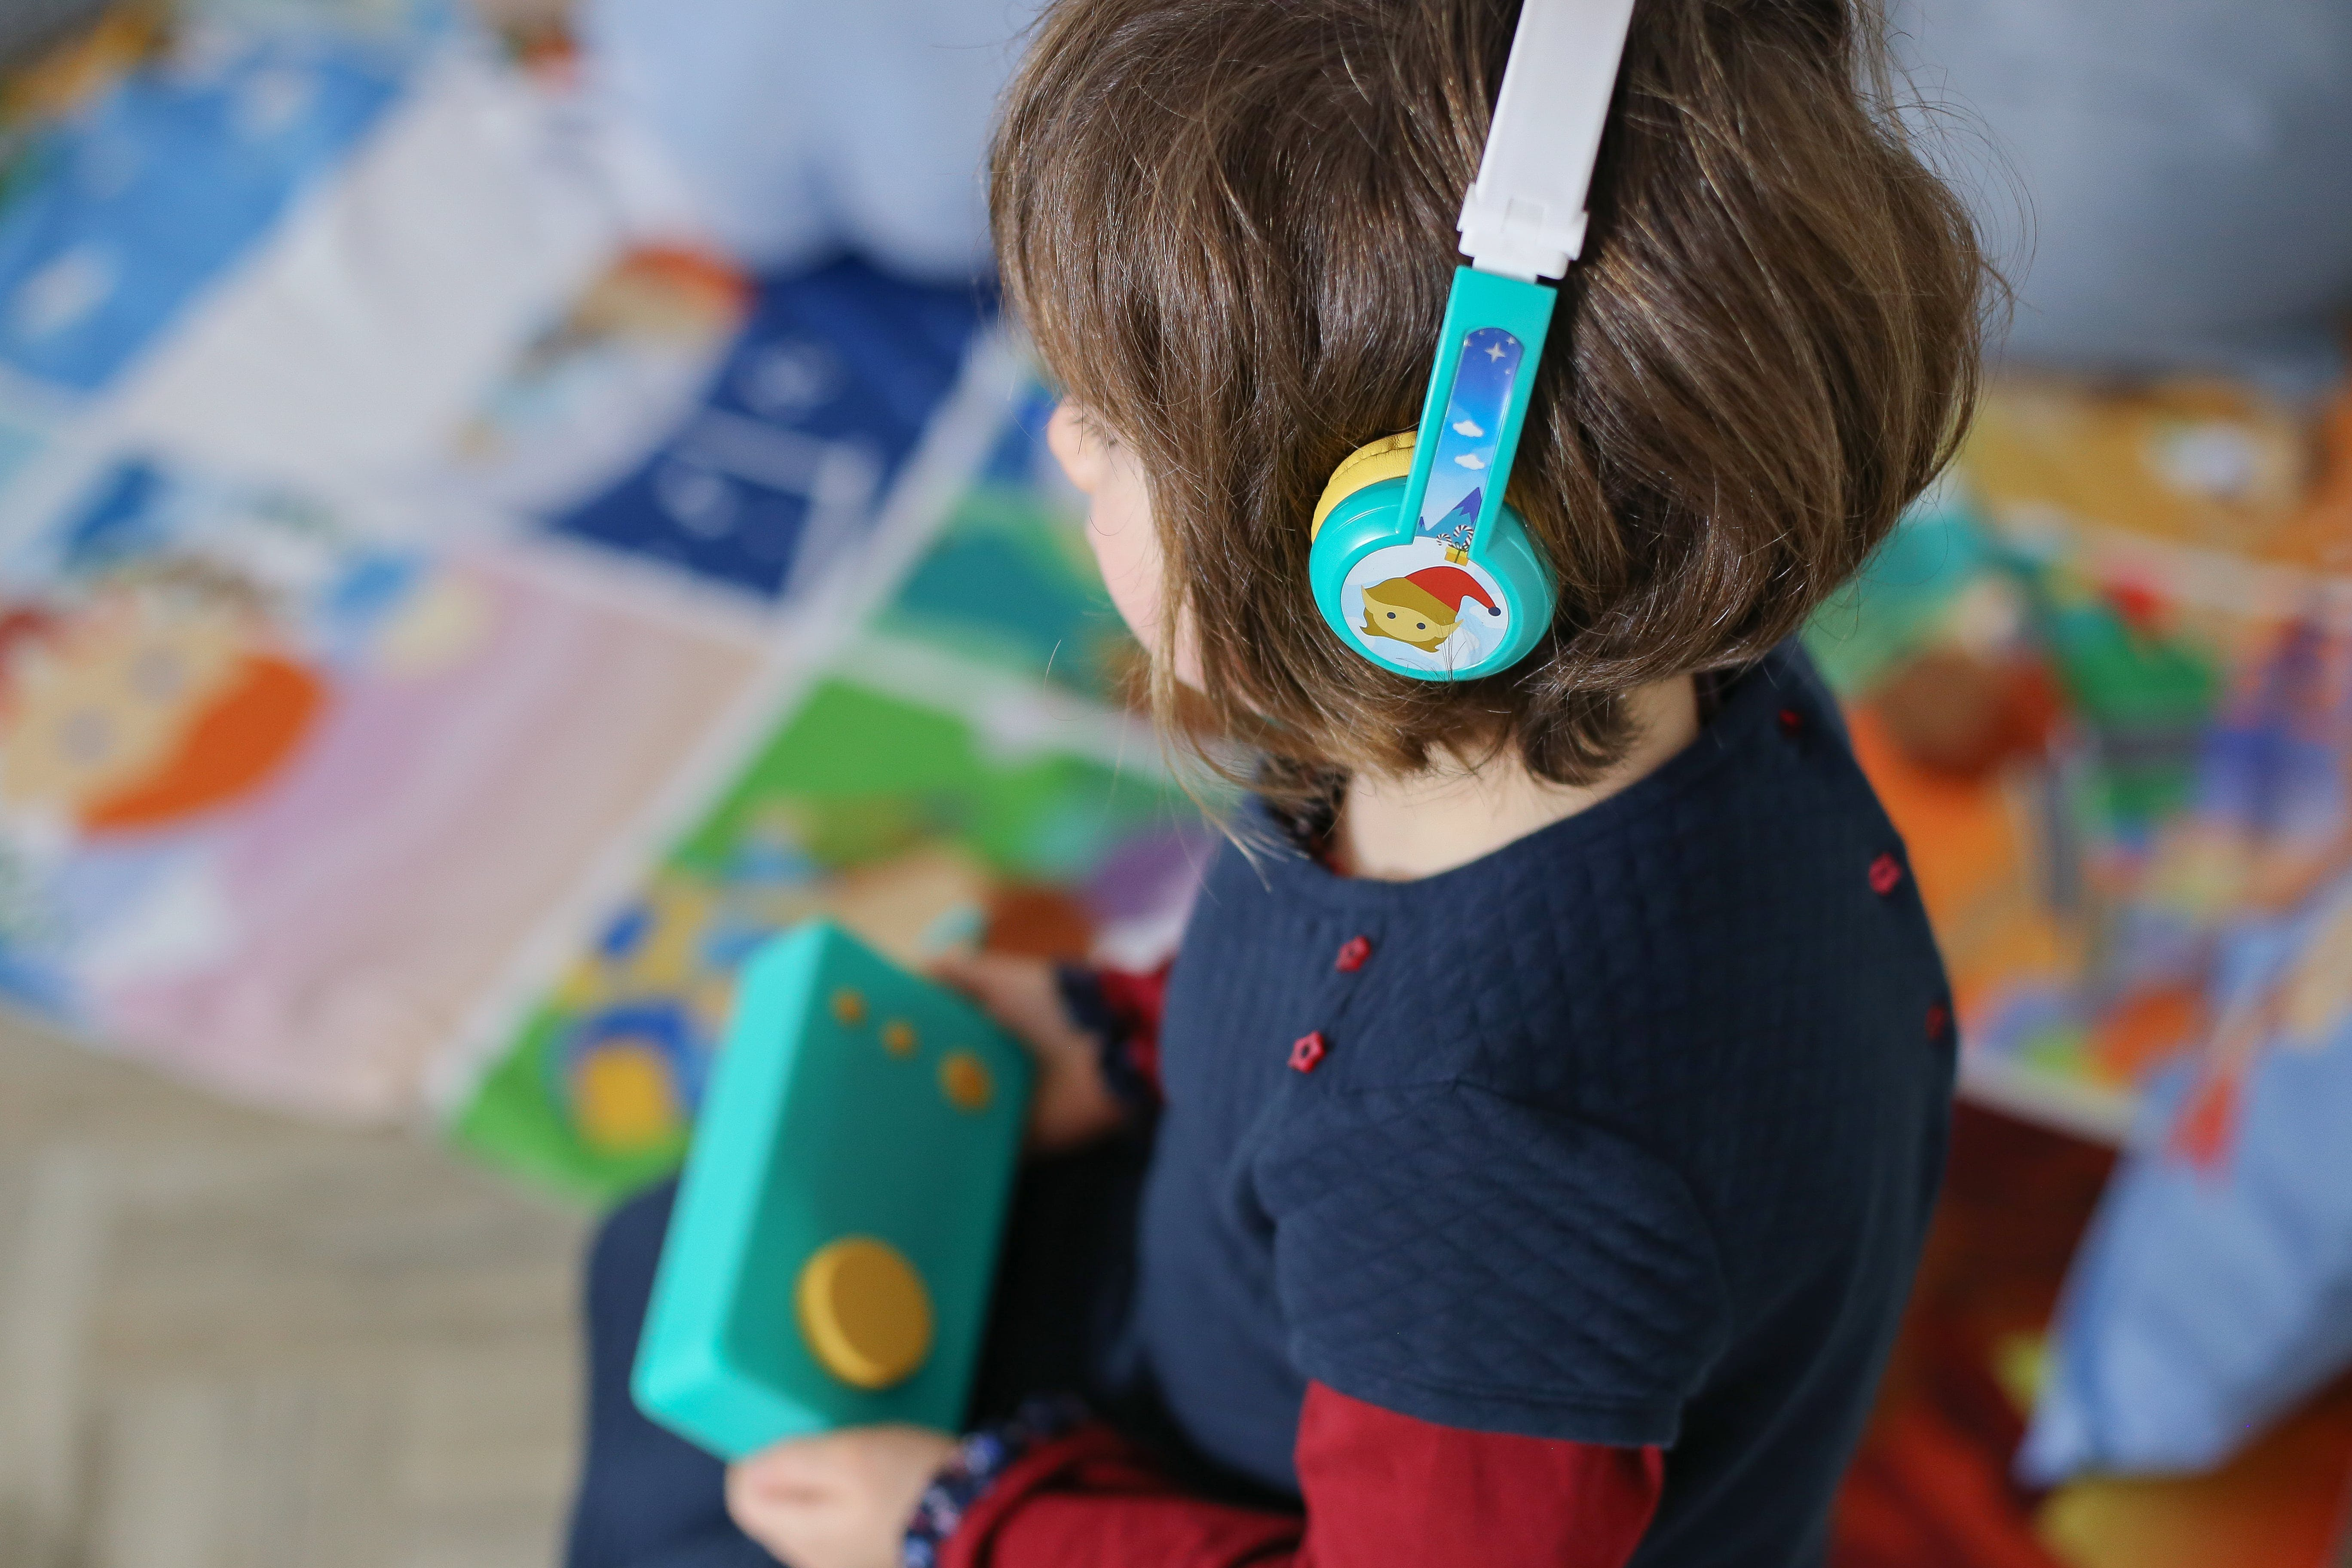 Comfortable and very sturdy, the Octave headphones have been designed to adapt to children from 3 to 10 years old